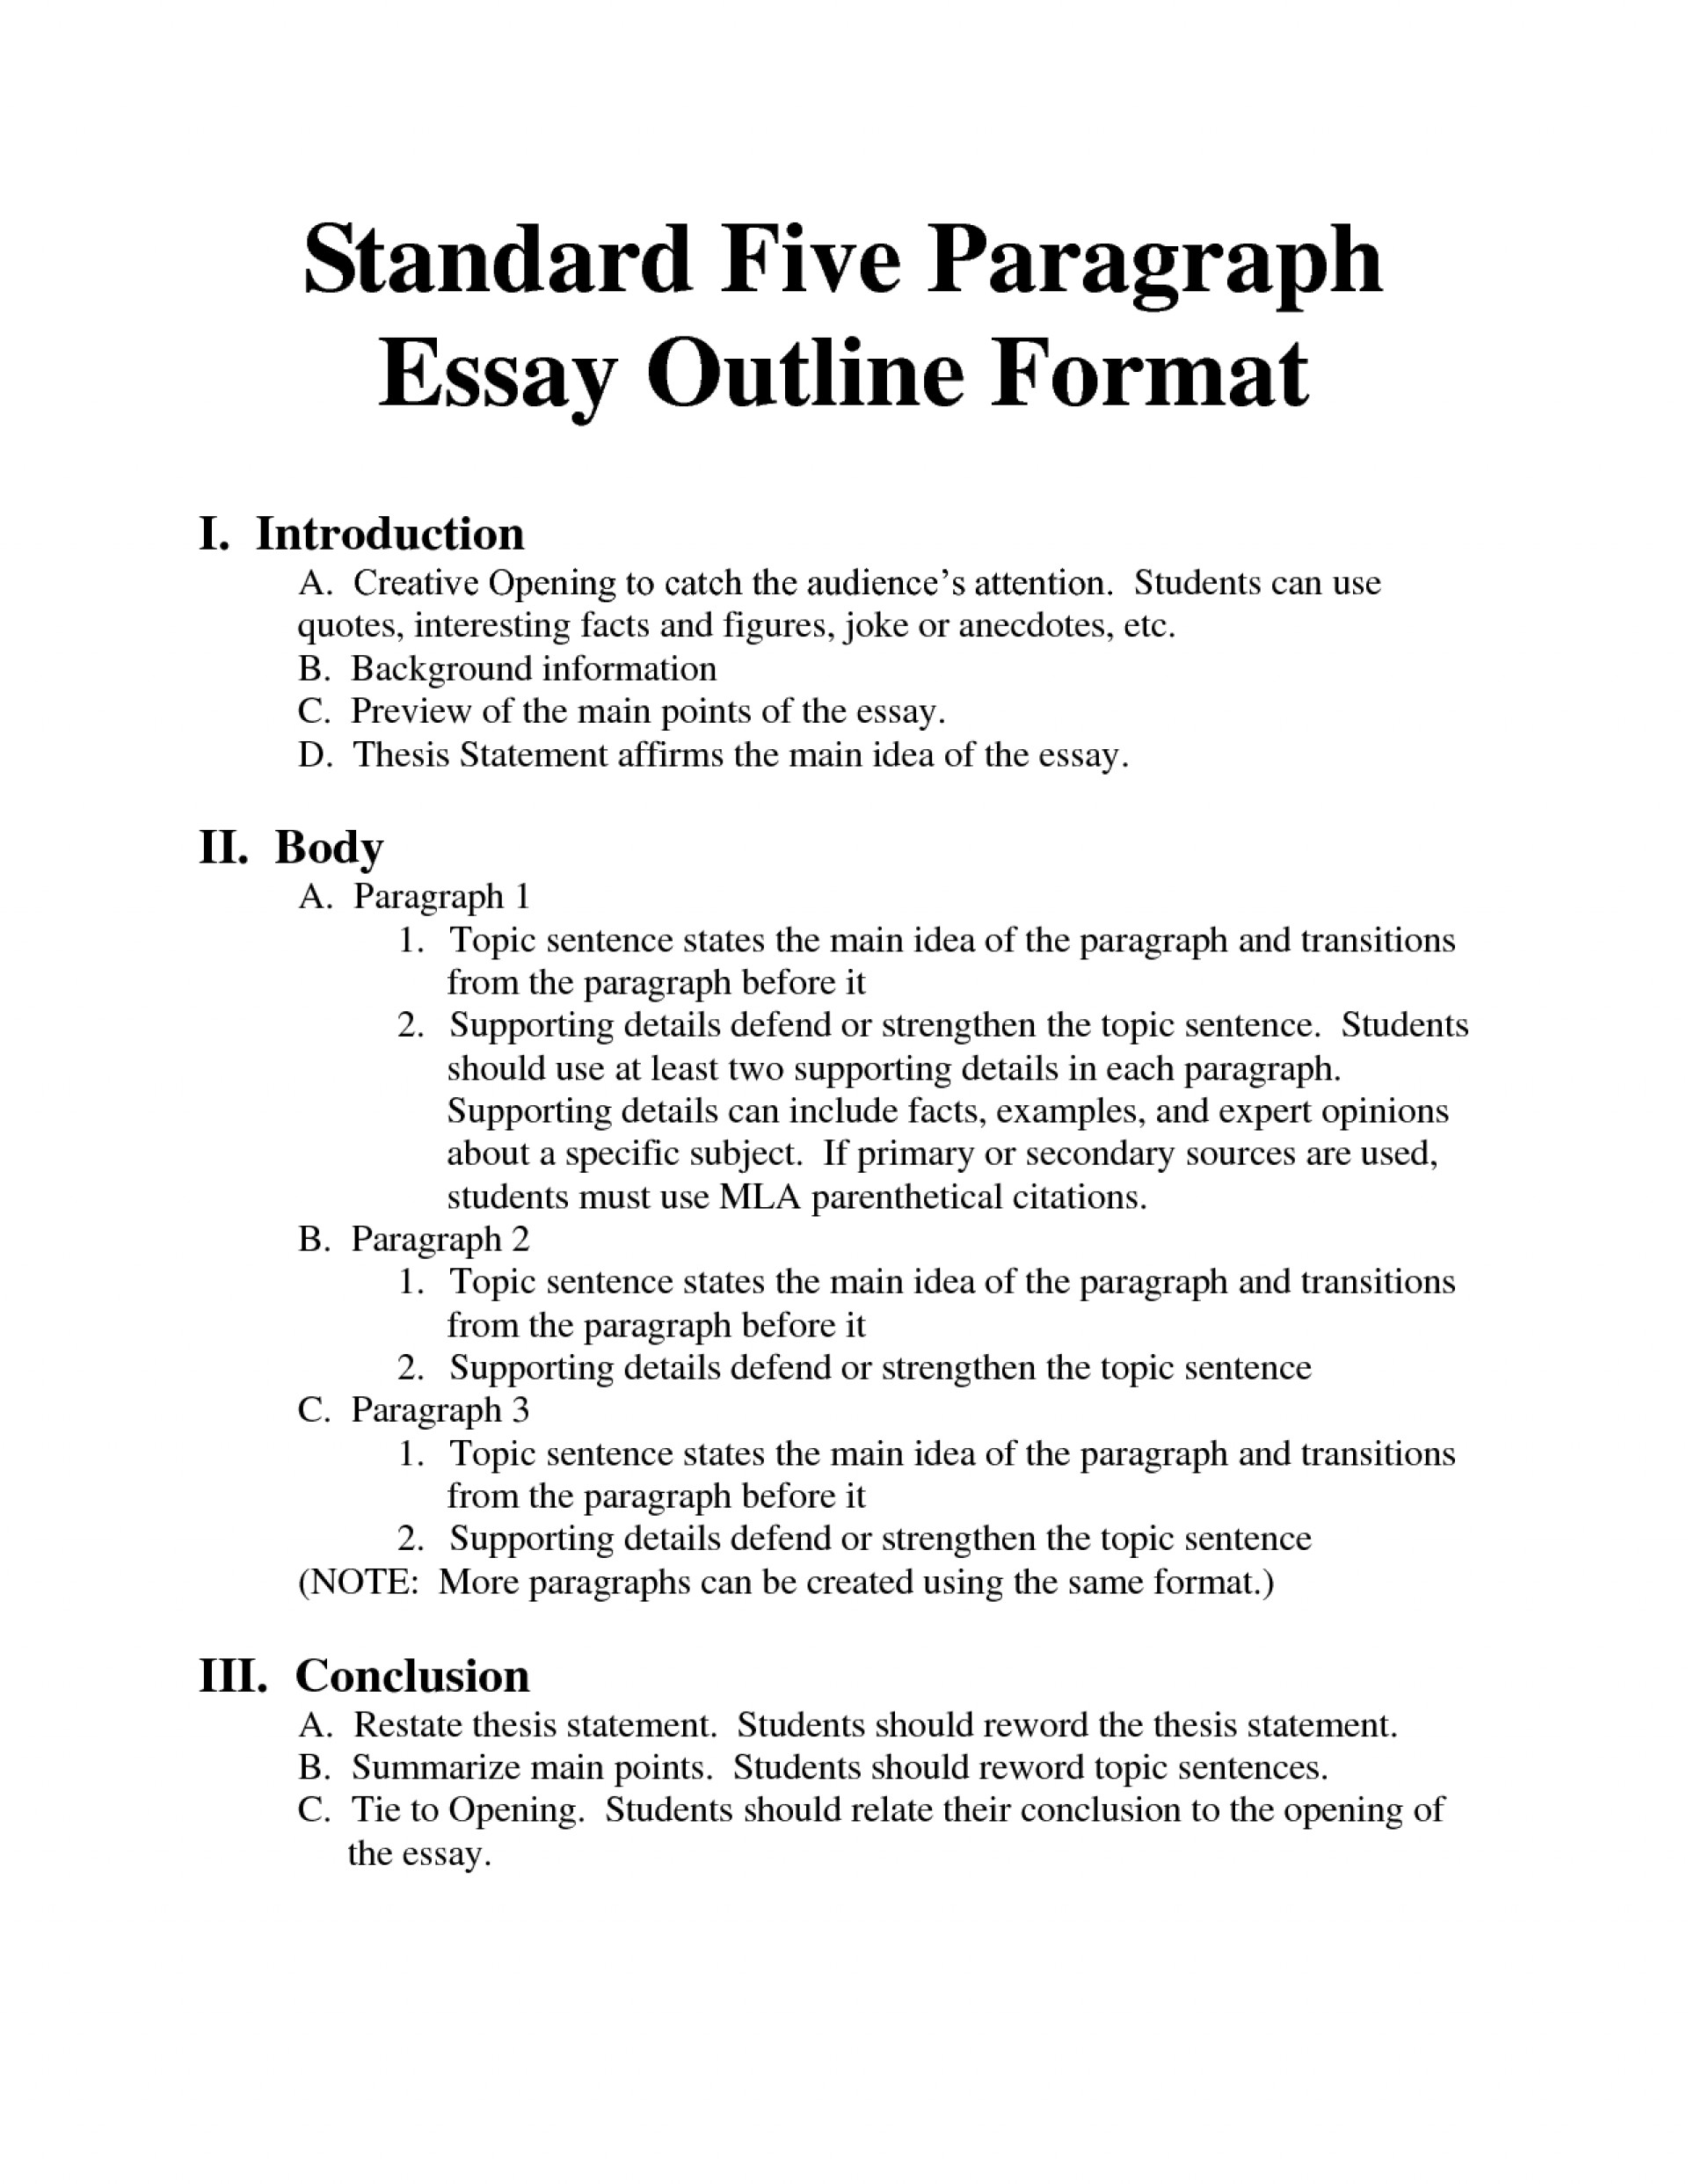 002 Essay Example How To Write An Excellent Outline For University A Research Paper Mla Format Pdf 1920